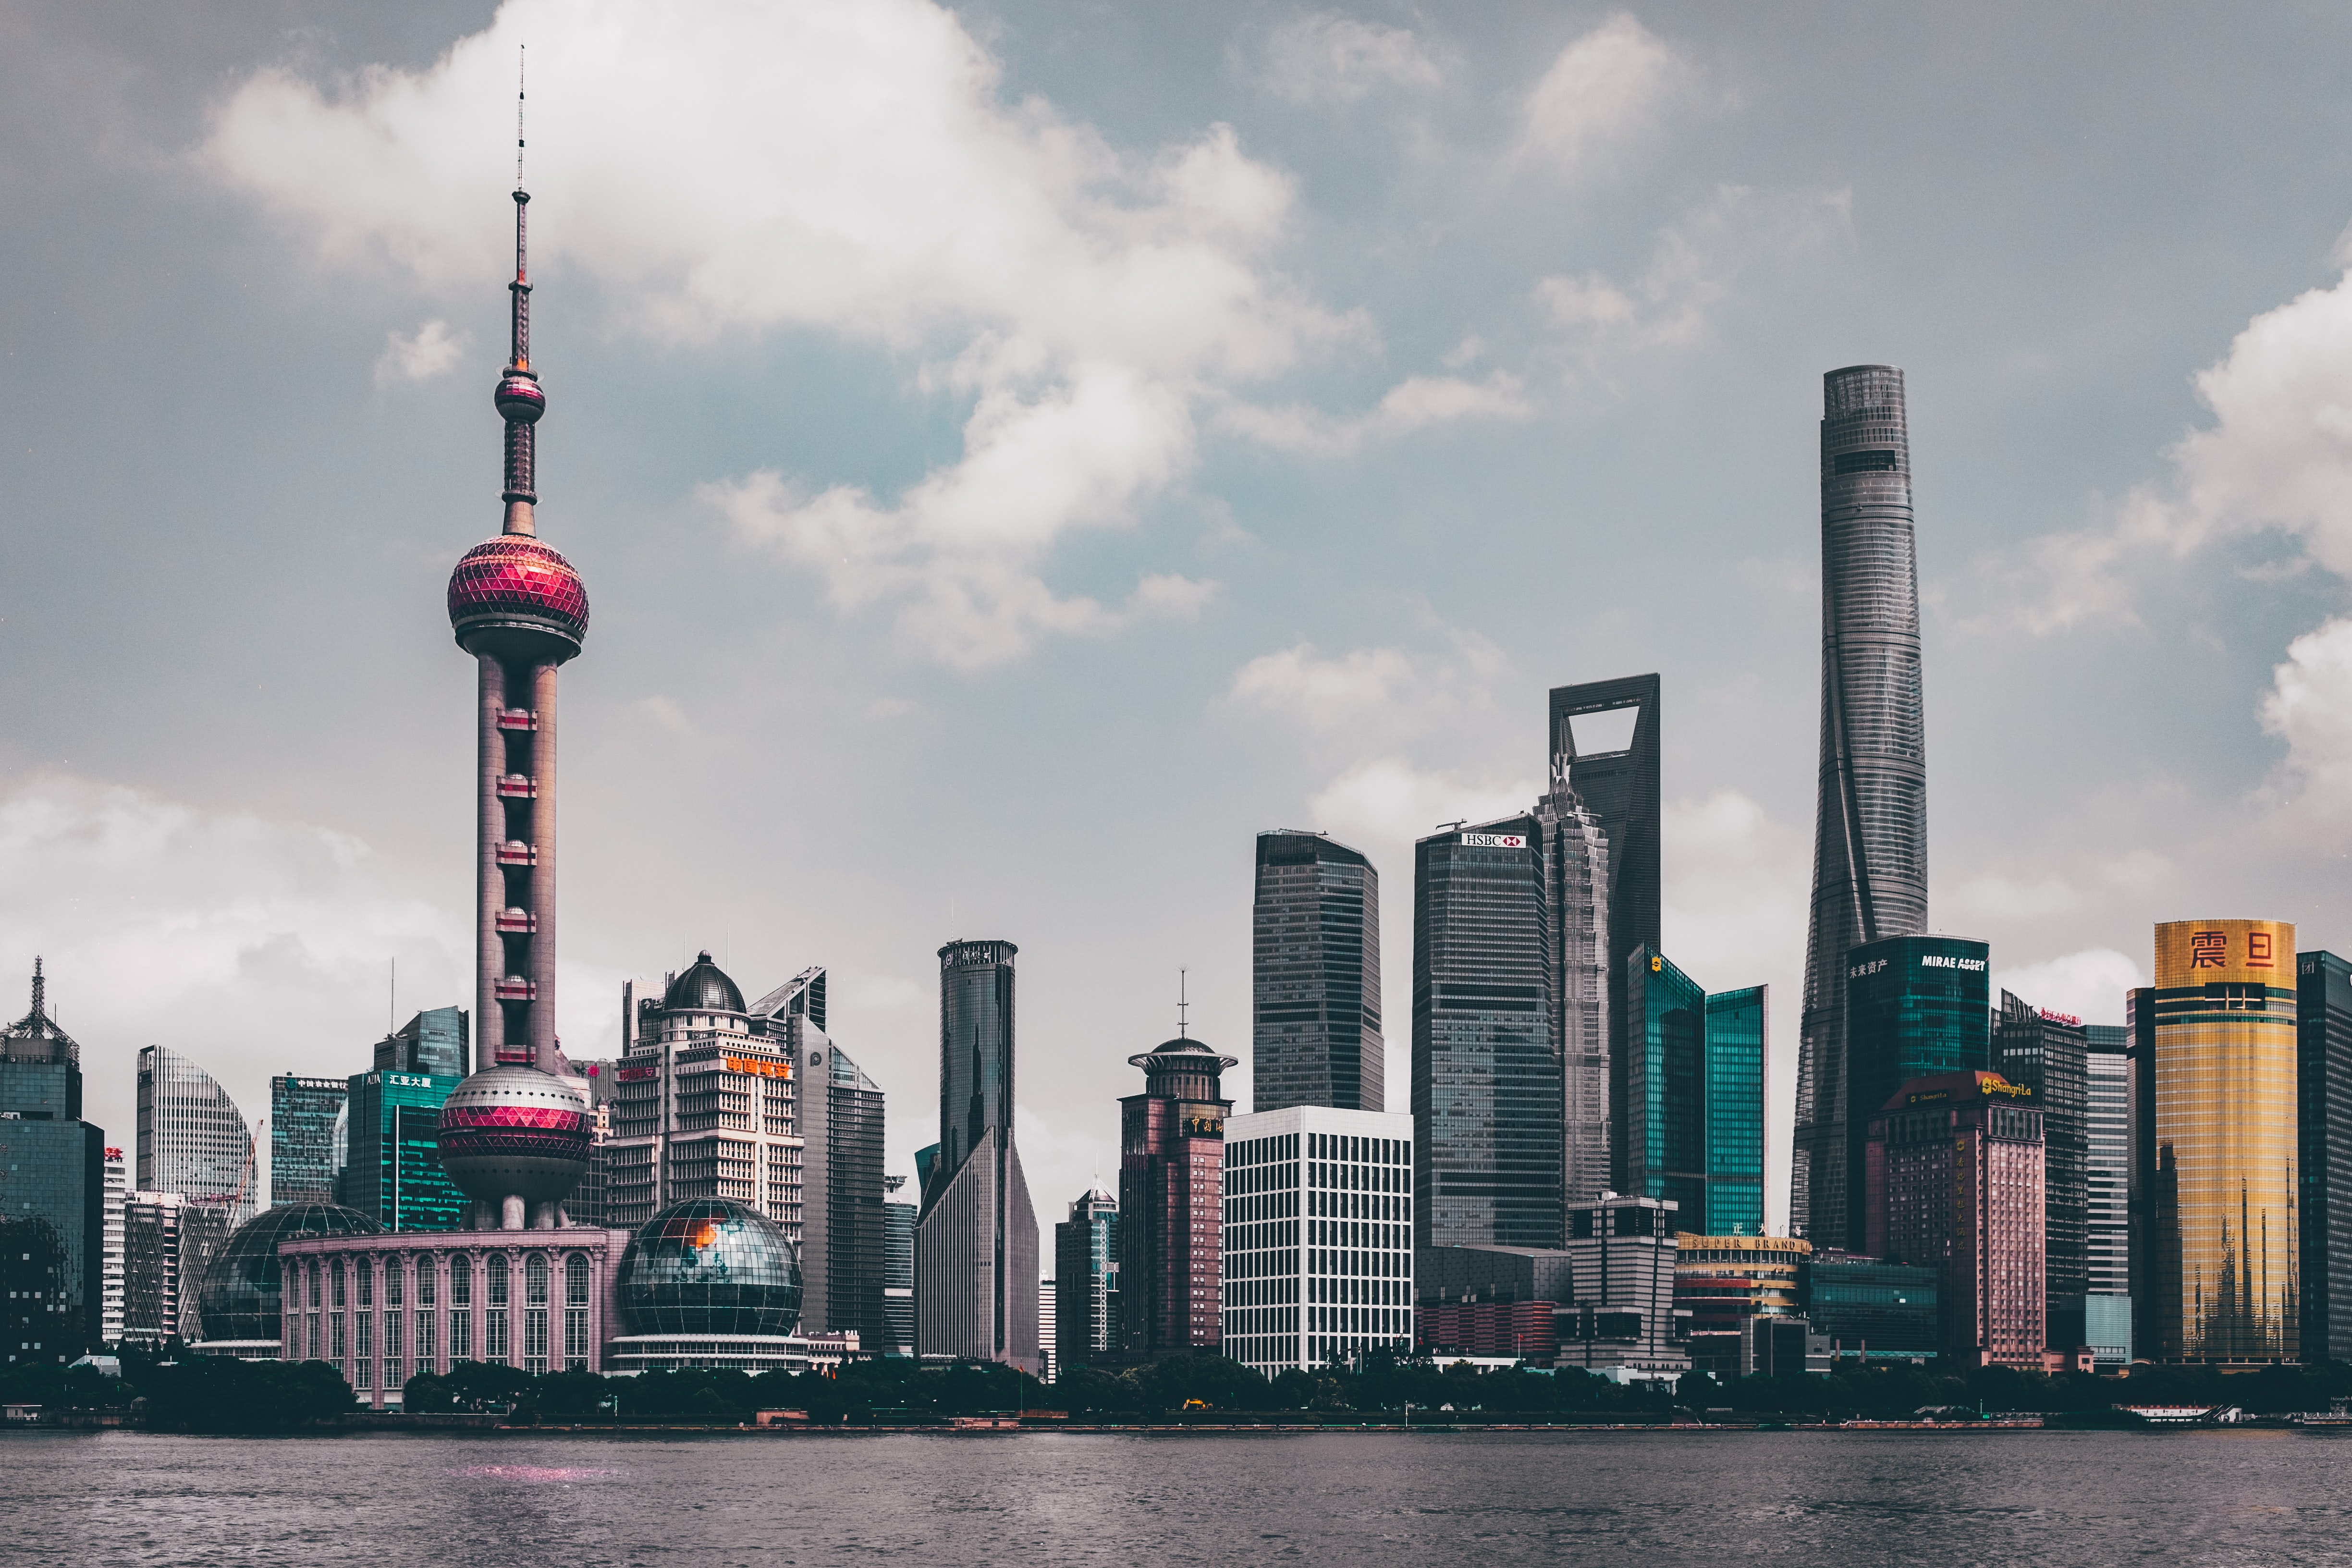 Oriental Pearl Tower in Shanghai during daytime